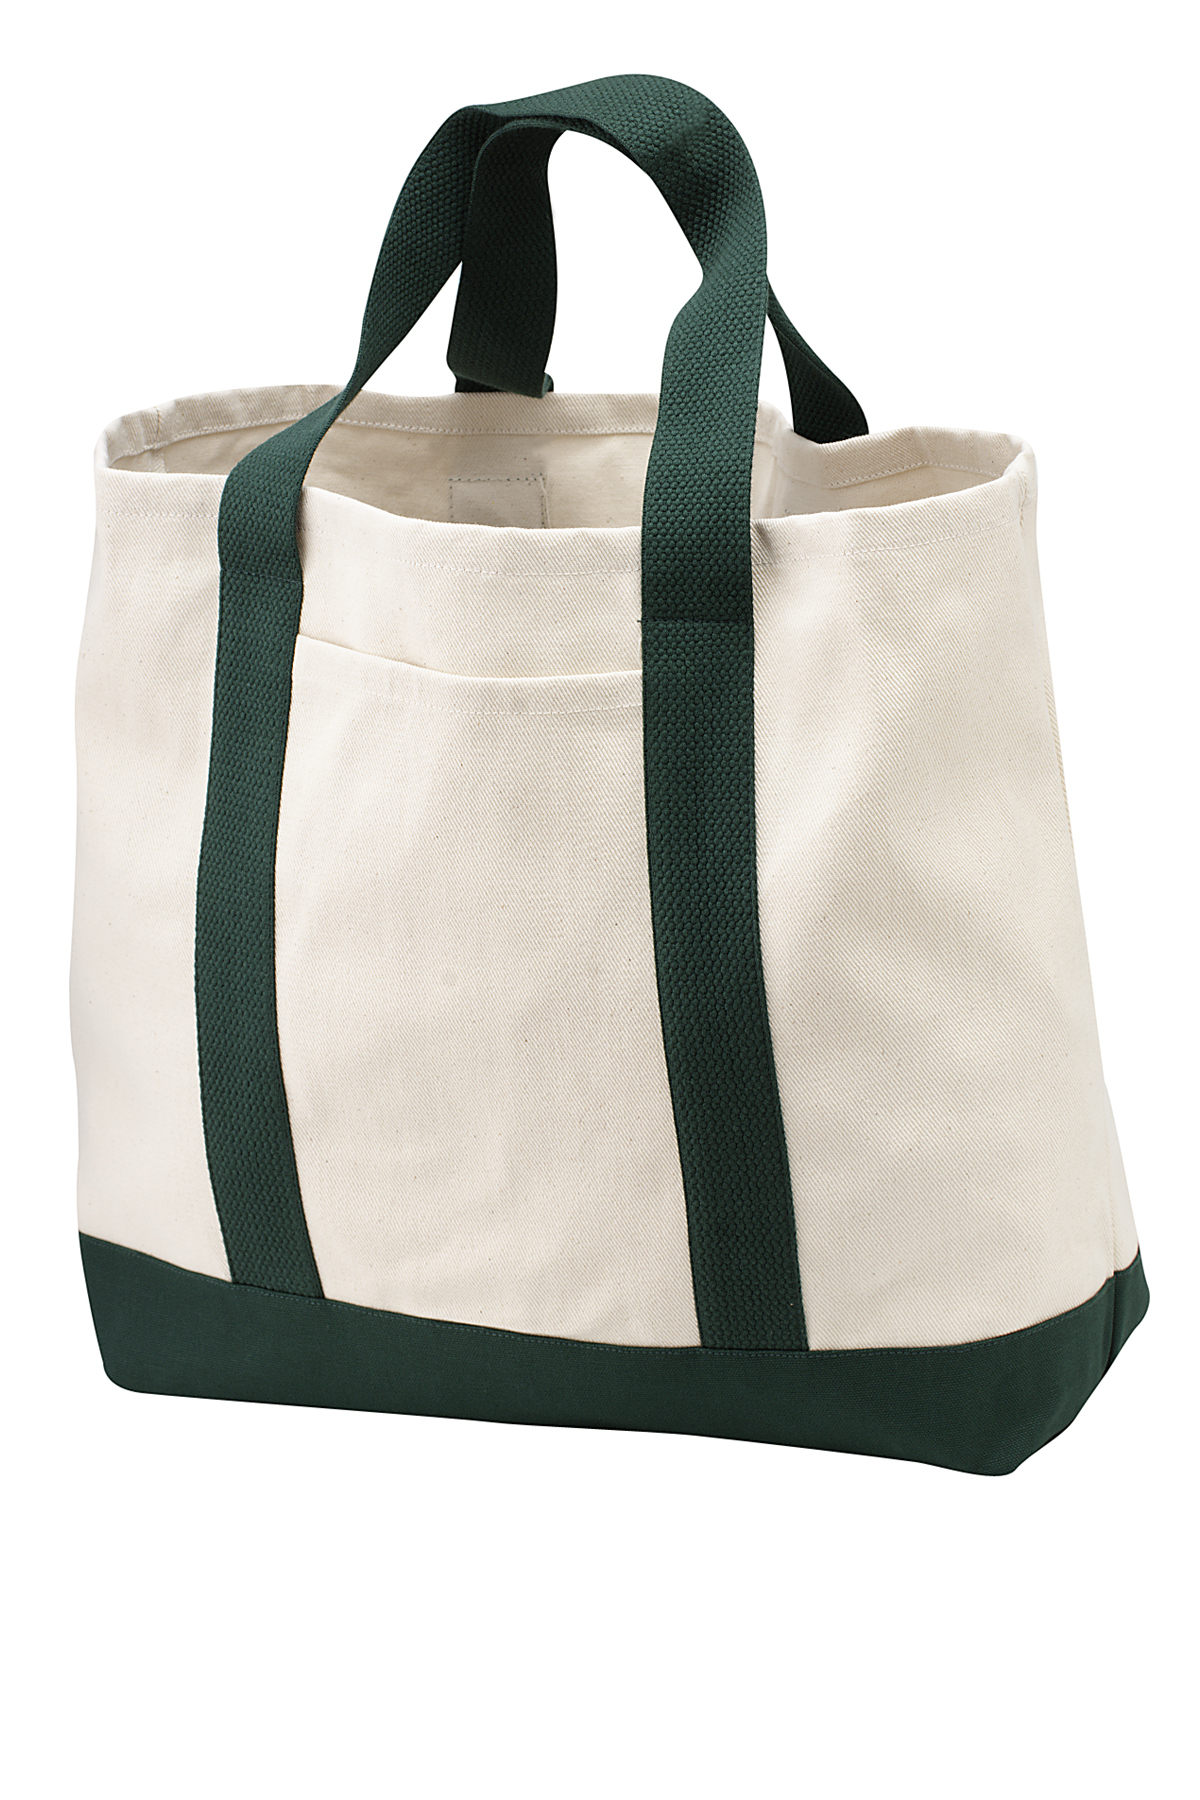 Port Authority TwoTone Shopping Tote